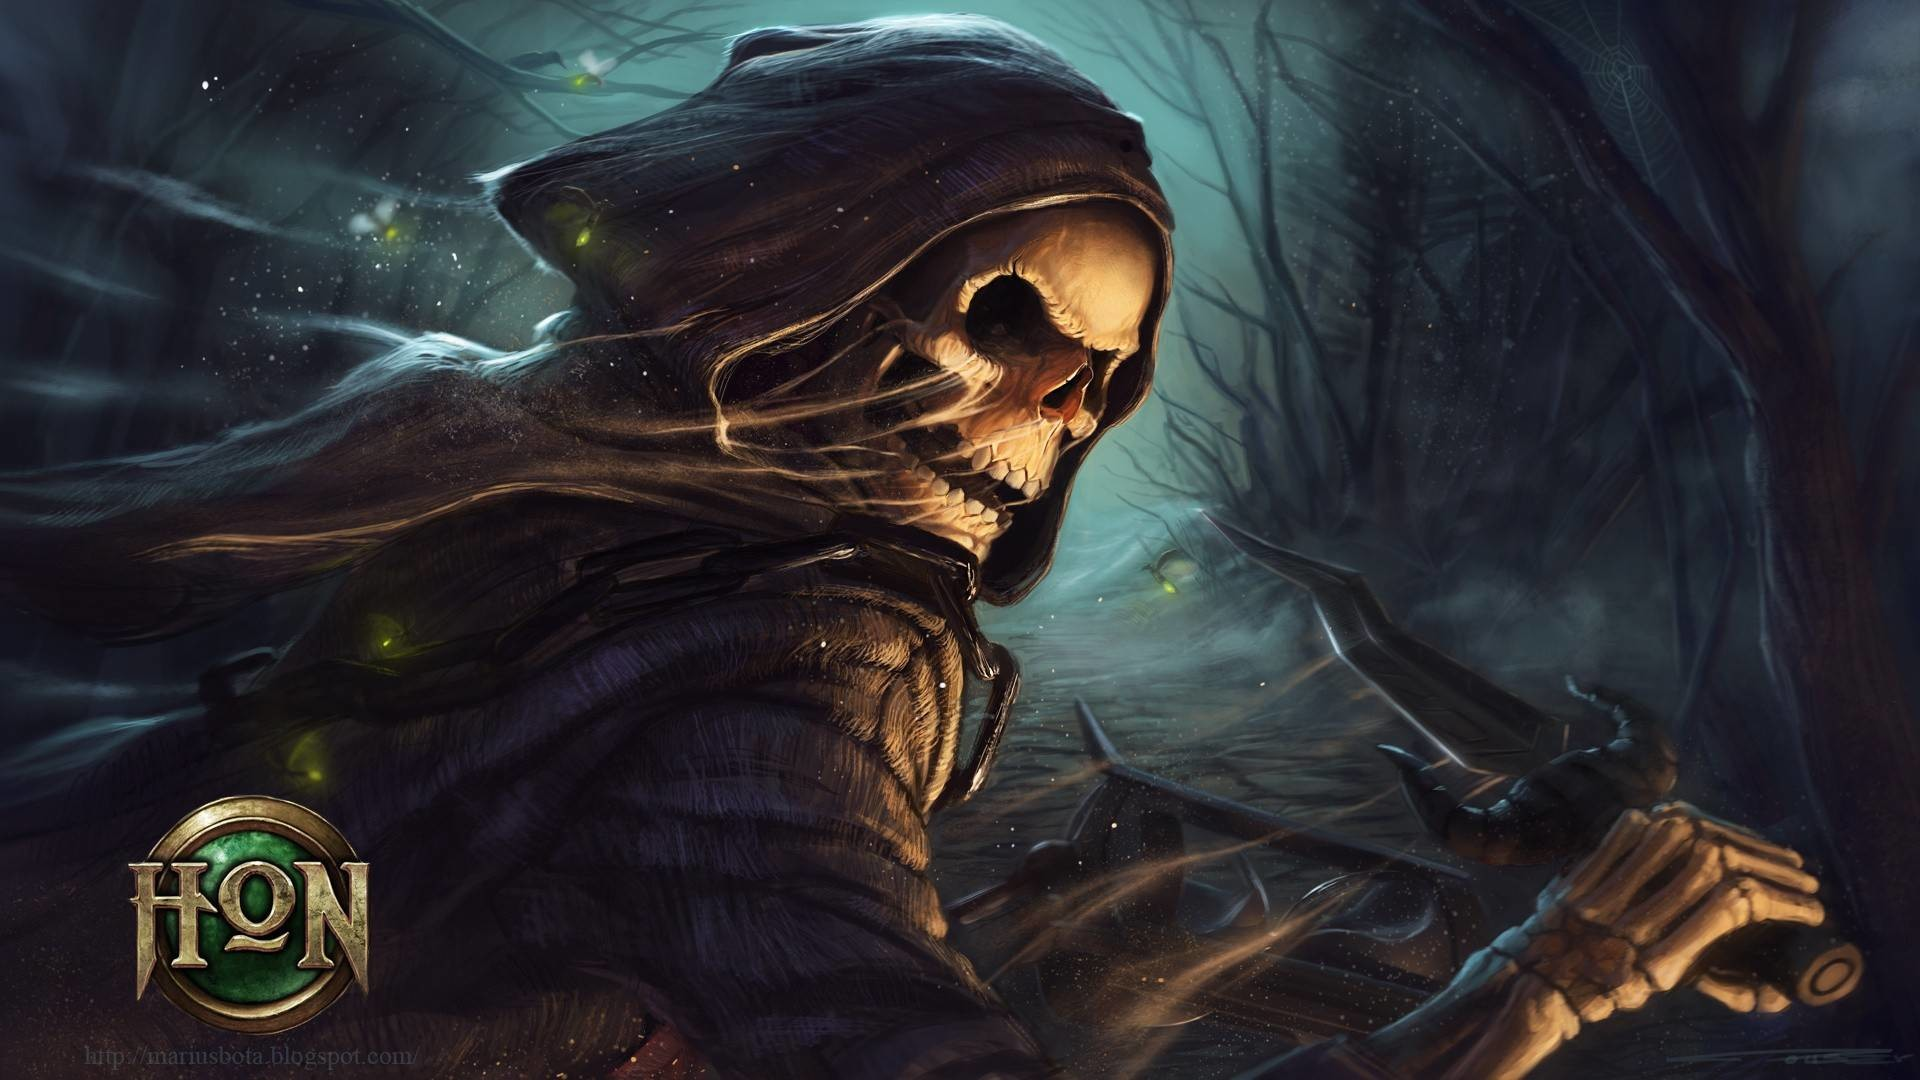 Res: 1920x1080, Top Grim Reaper Wallpaper  Images for Pinterest